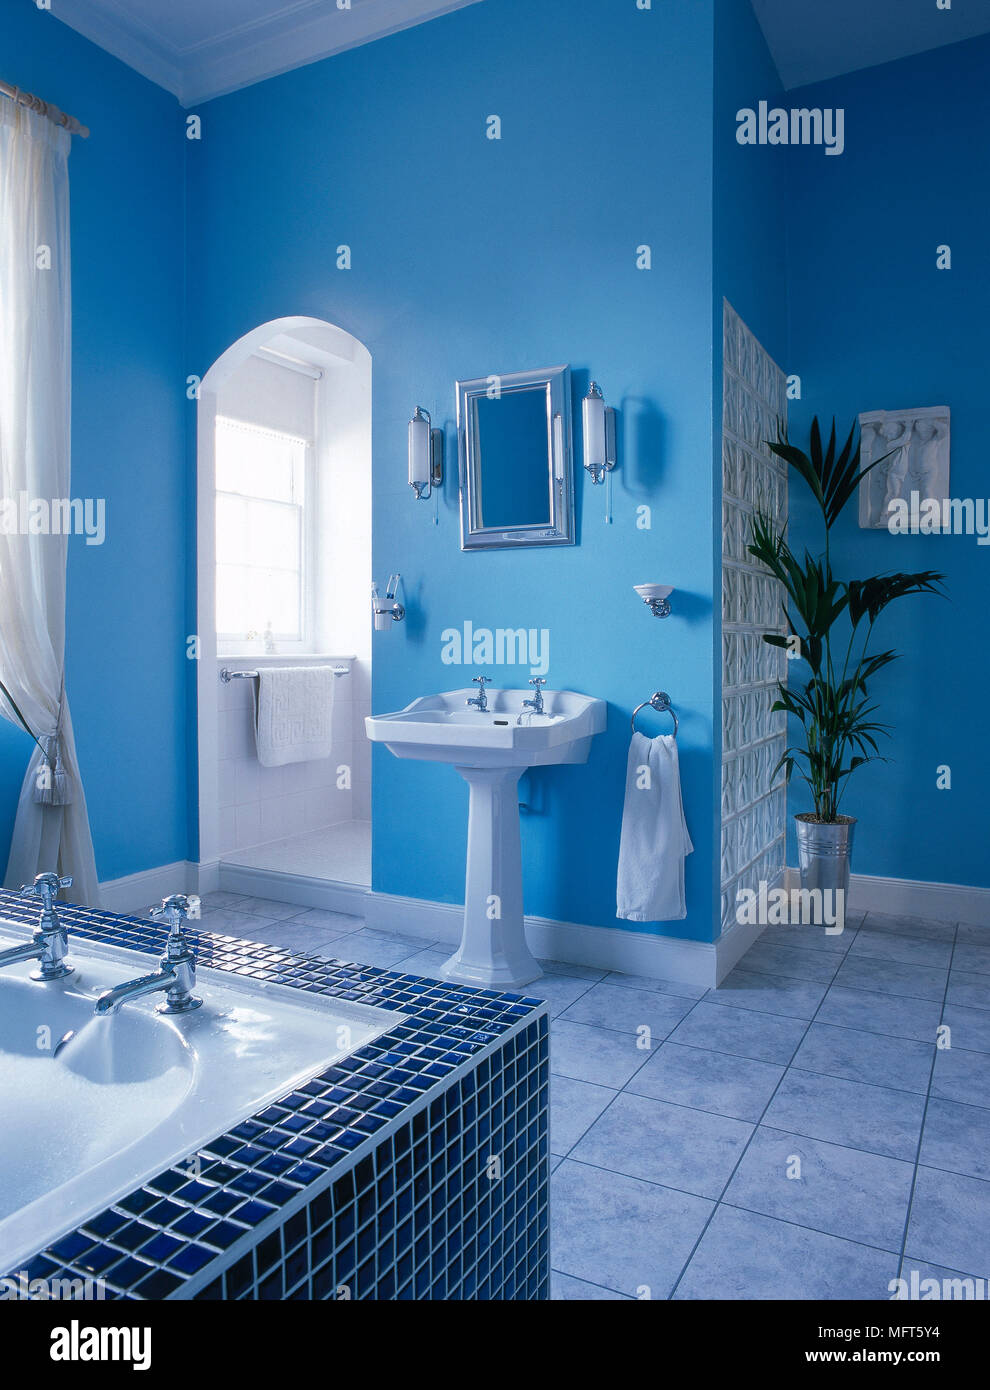 A modern bathroom with blue walls, bath with mosaic tiled surround ...